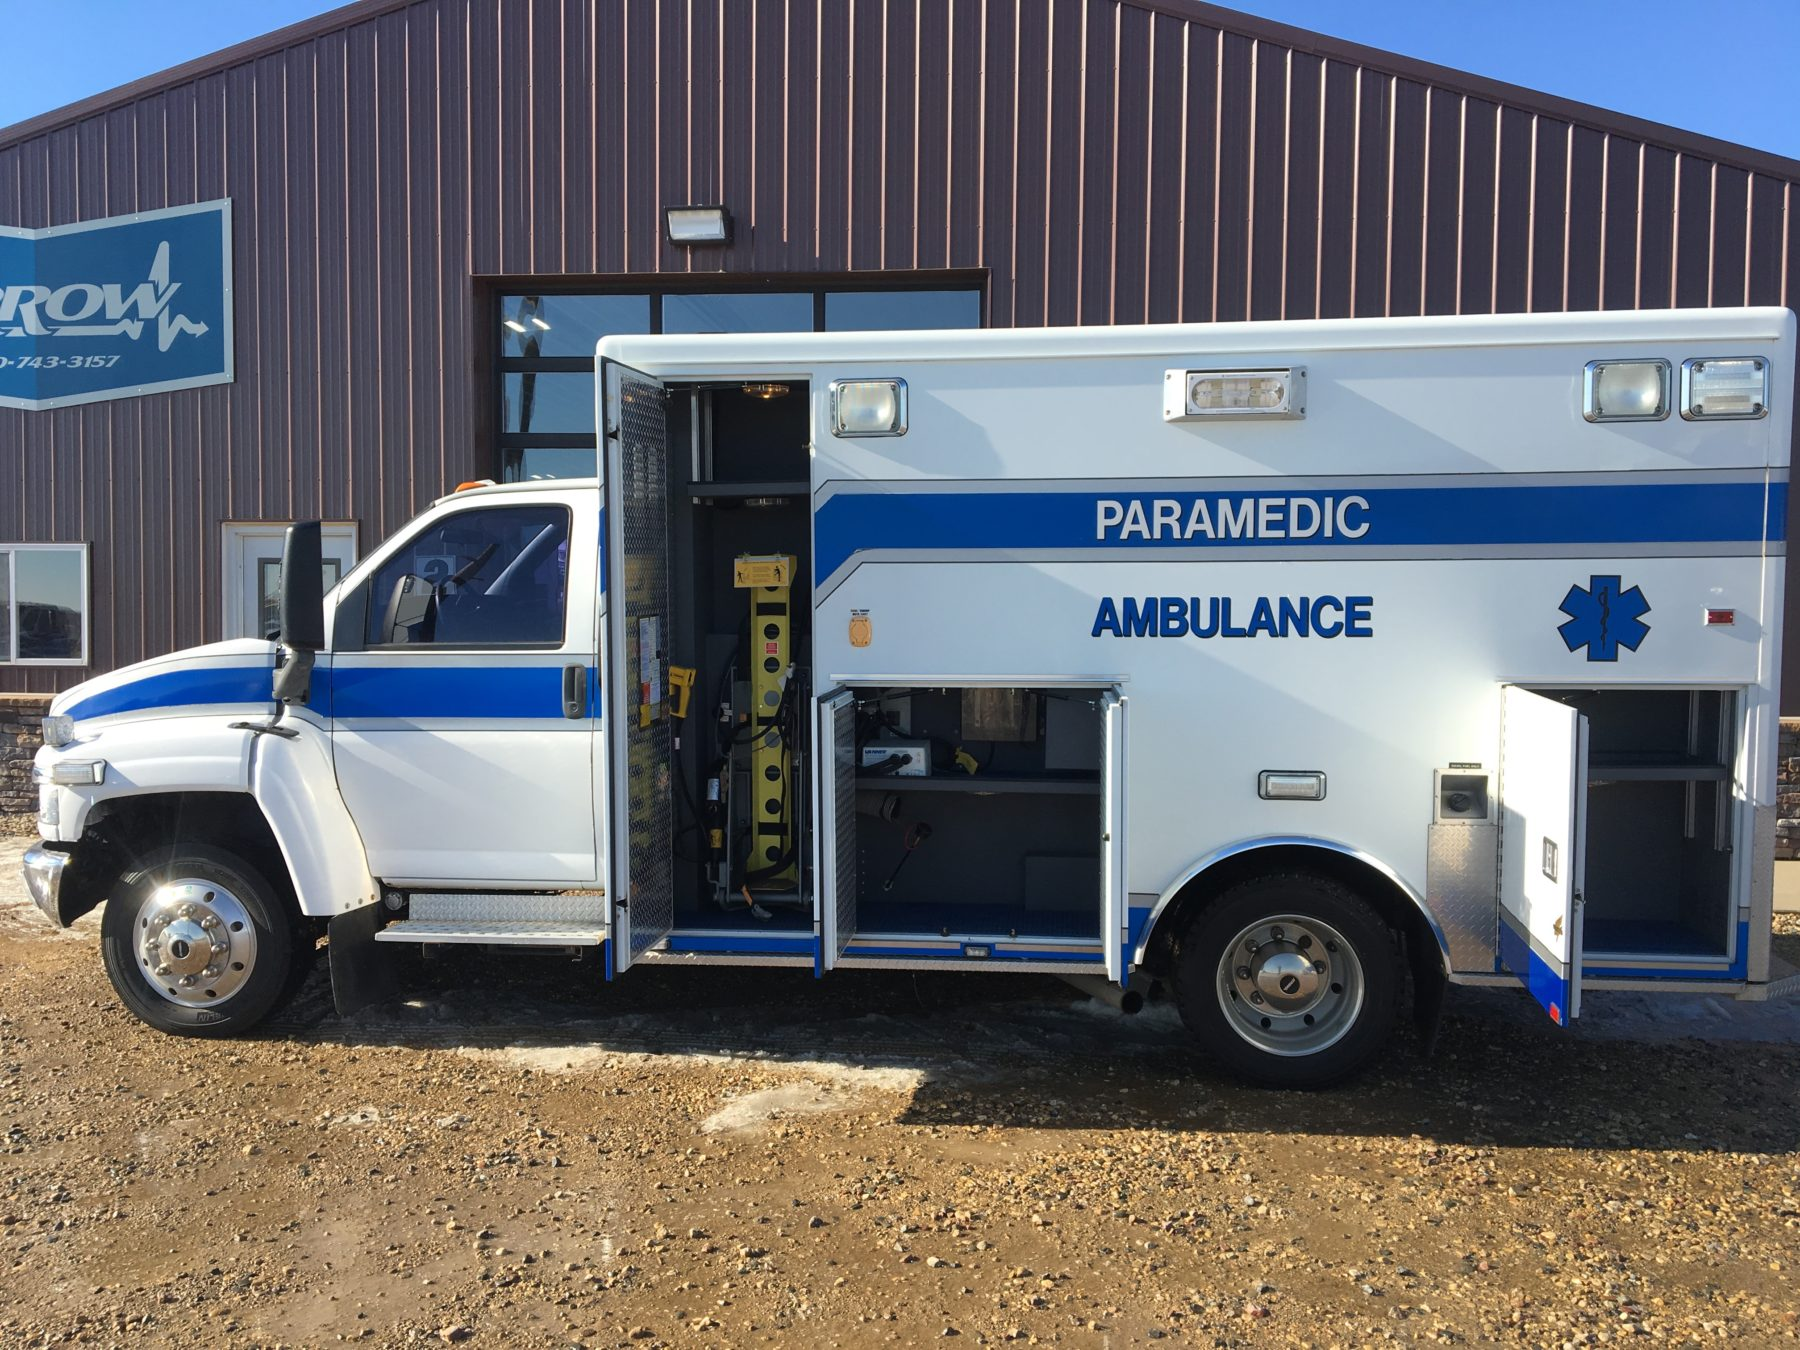 2006 Chevrolet C4500 Heavy Duty Ambulance For Sale – Picture 8